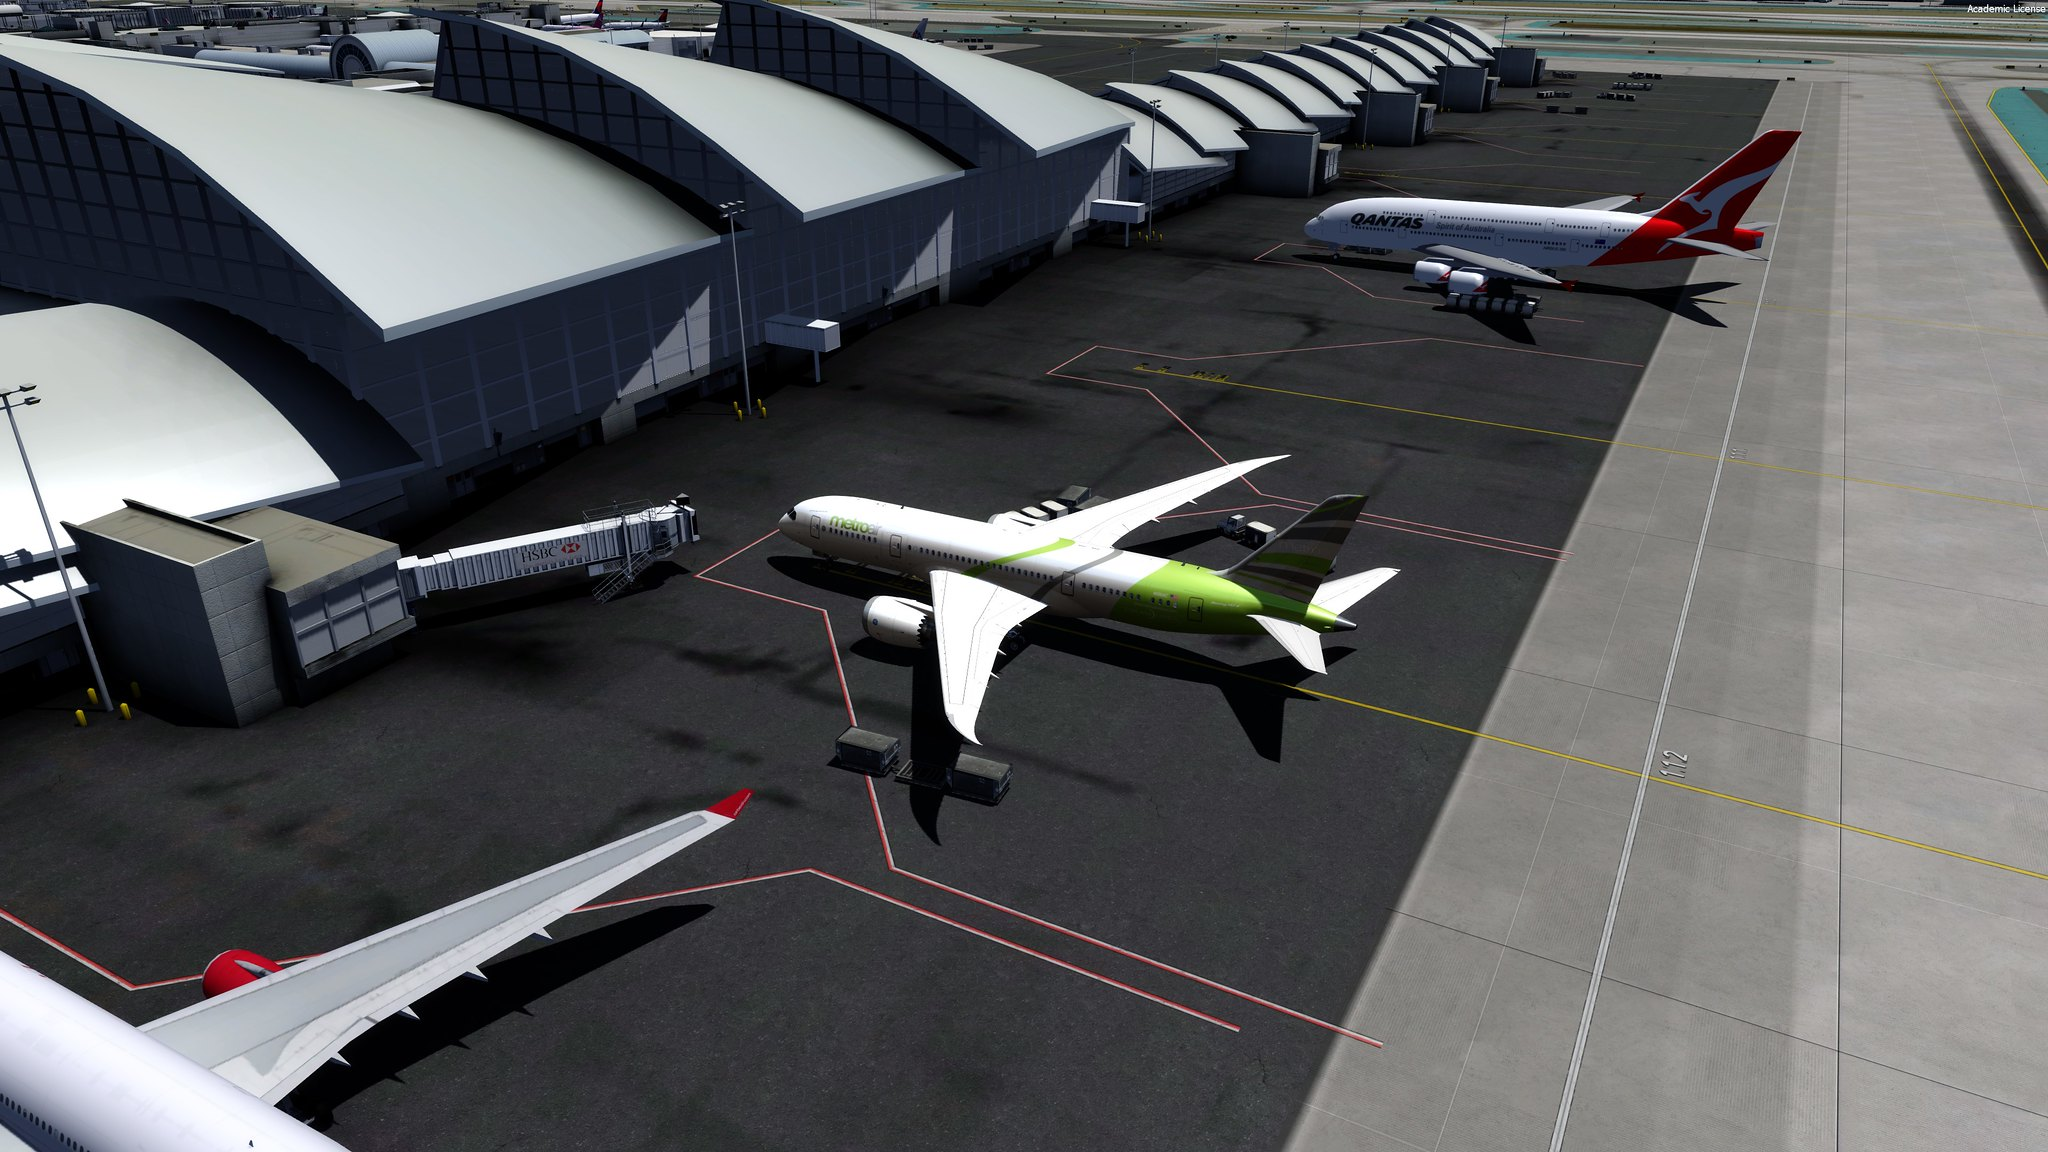 KLAX - Only 1 jetway after update **SOLVED**